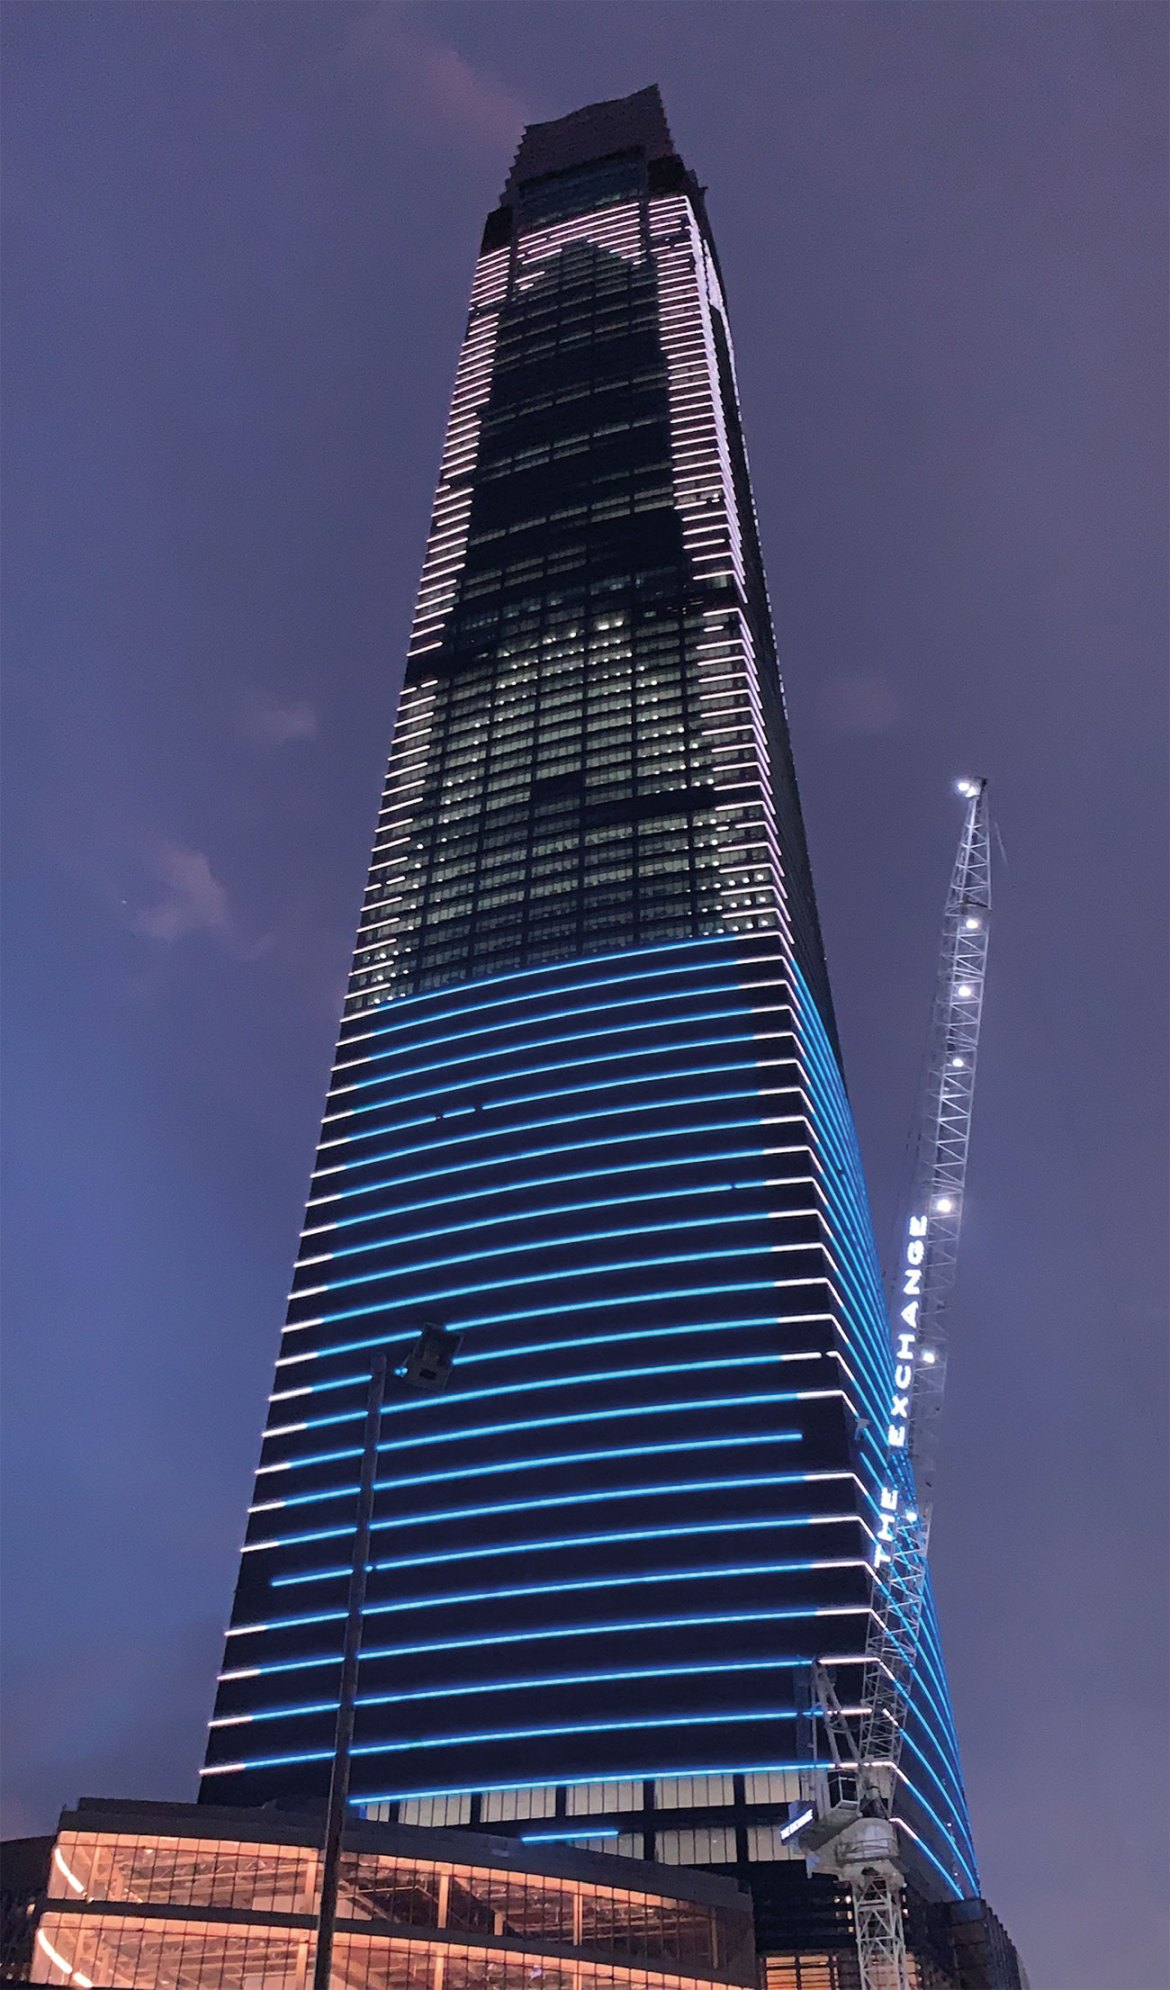 Located in Kuala Lumpur, the Merdeka 118 tower is over 600m in height.